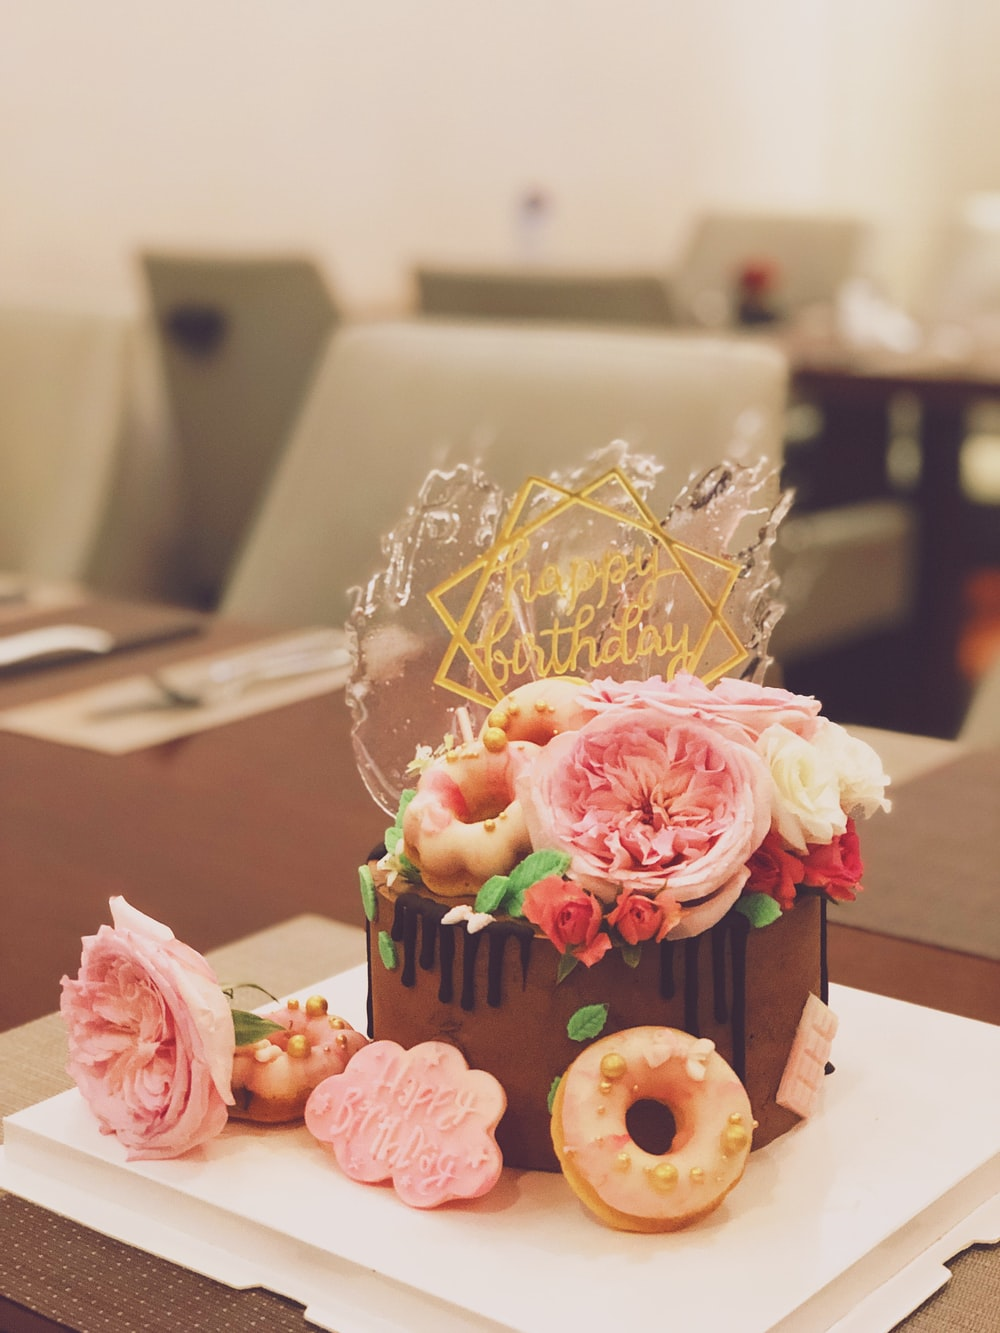 chocolate cake topped with roses and doughnuts